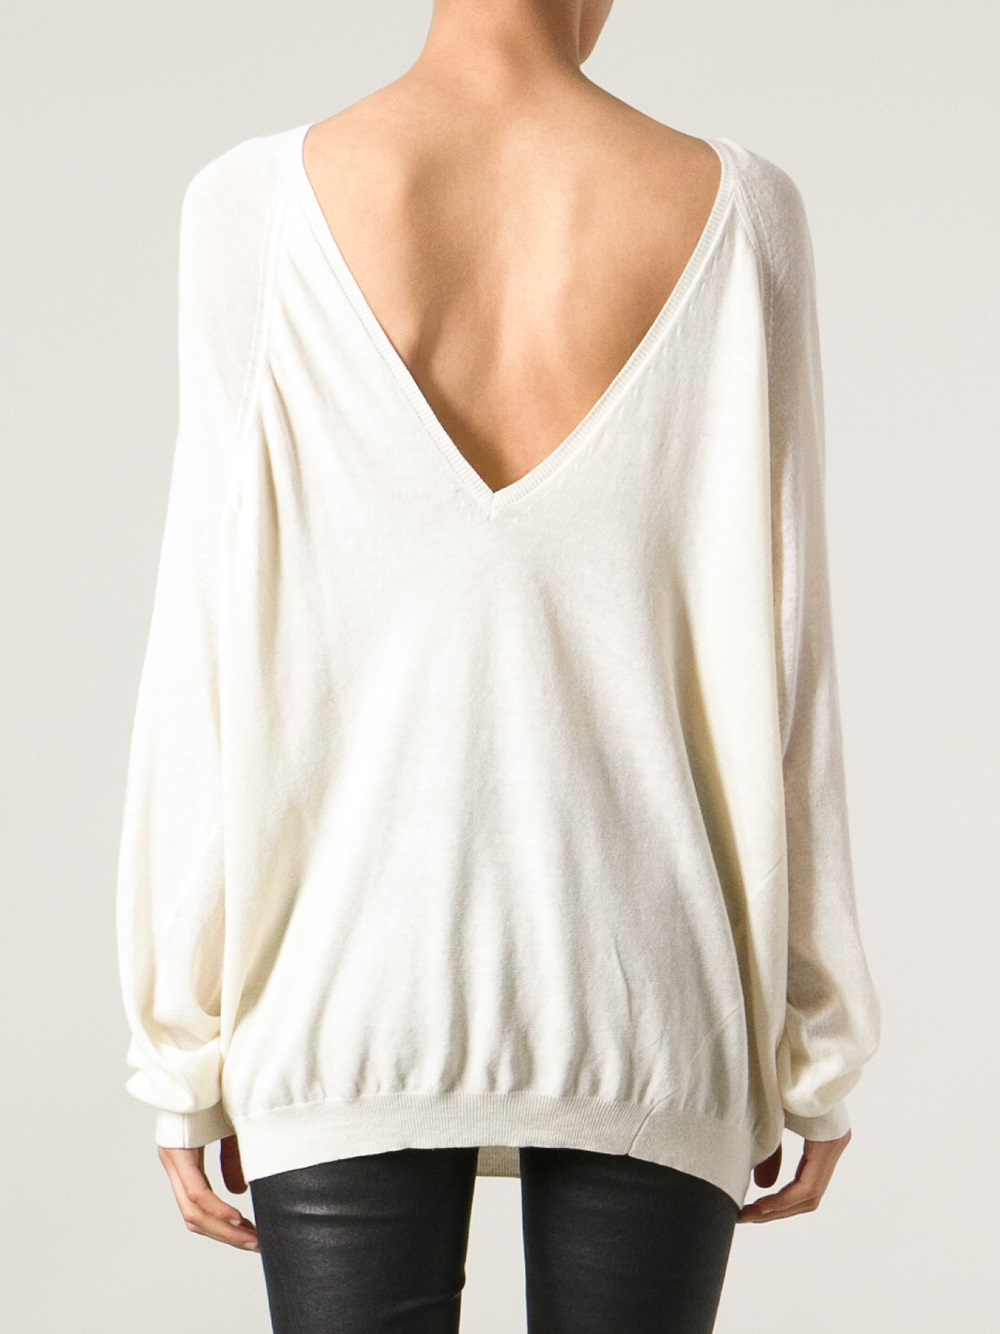 Buy low price, high quality winter low neck sweater with worldwide shipping on vip7fps.tk